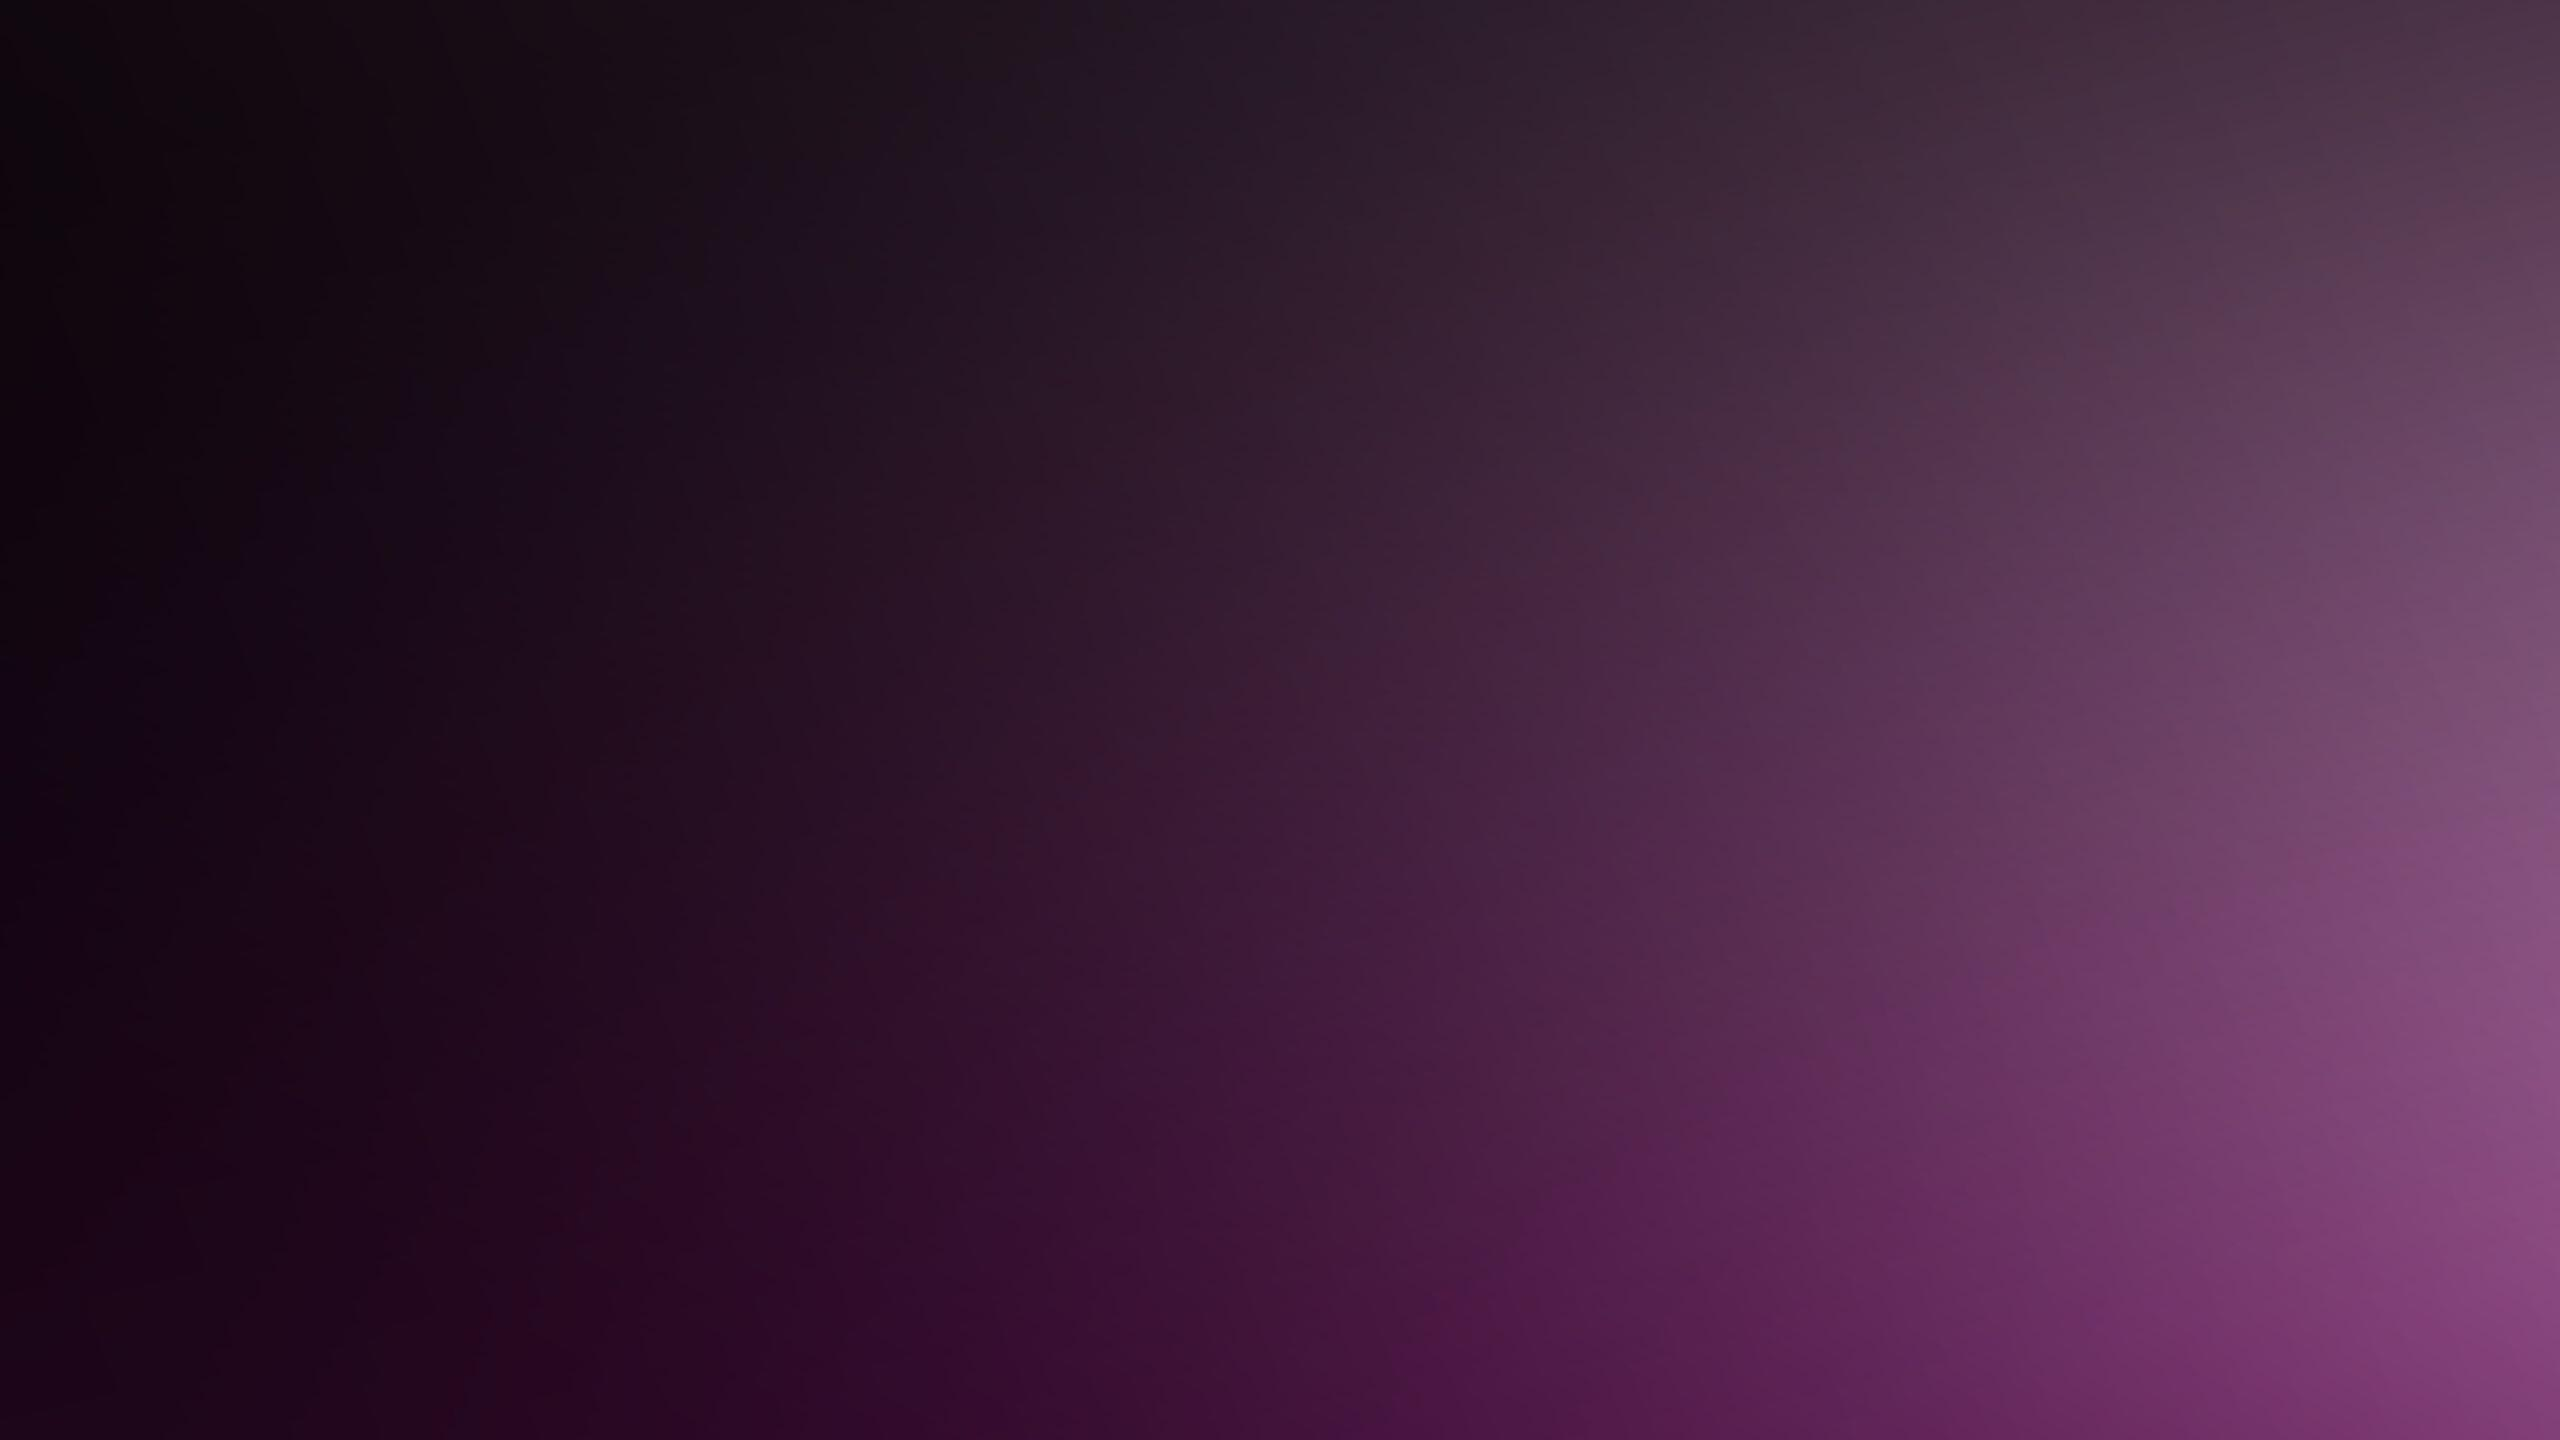 Dark Purple Background Wallpaper | Download Wallpapers